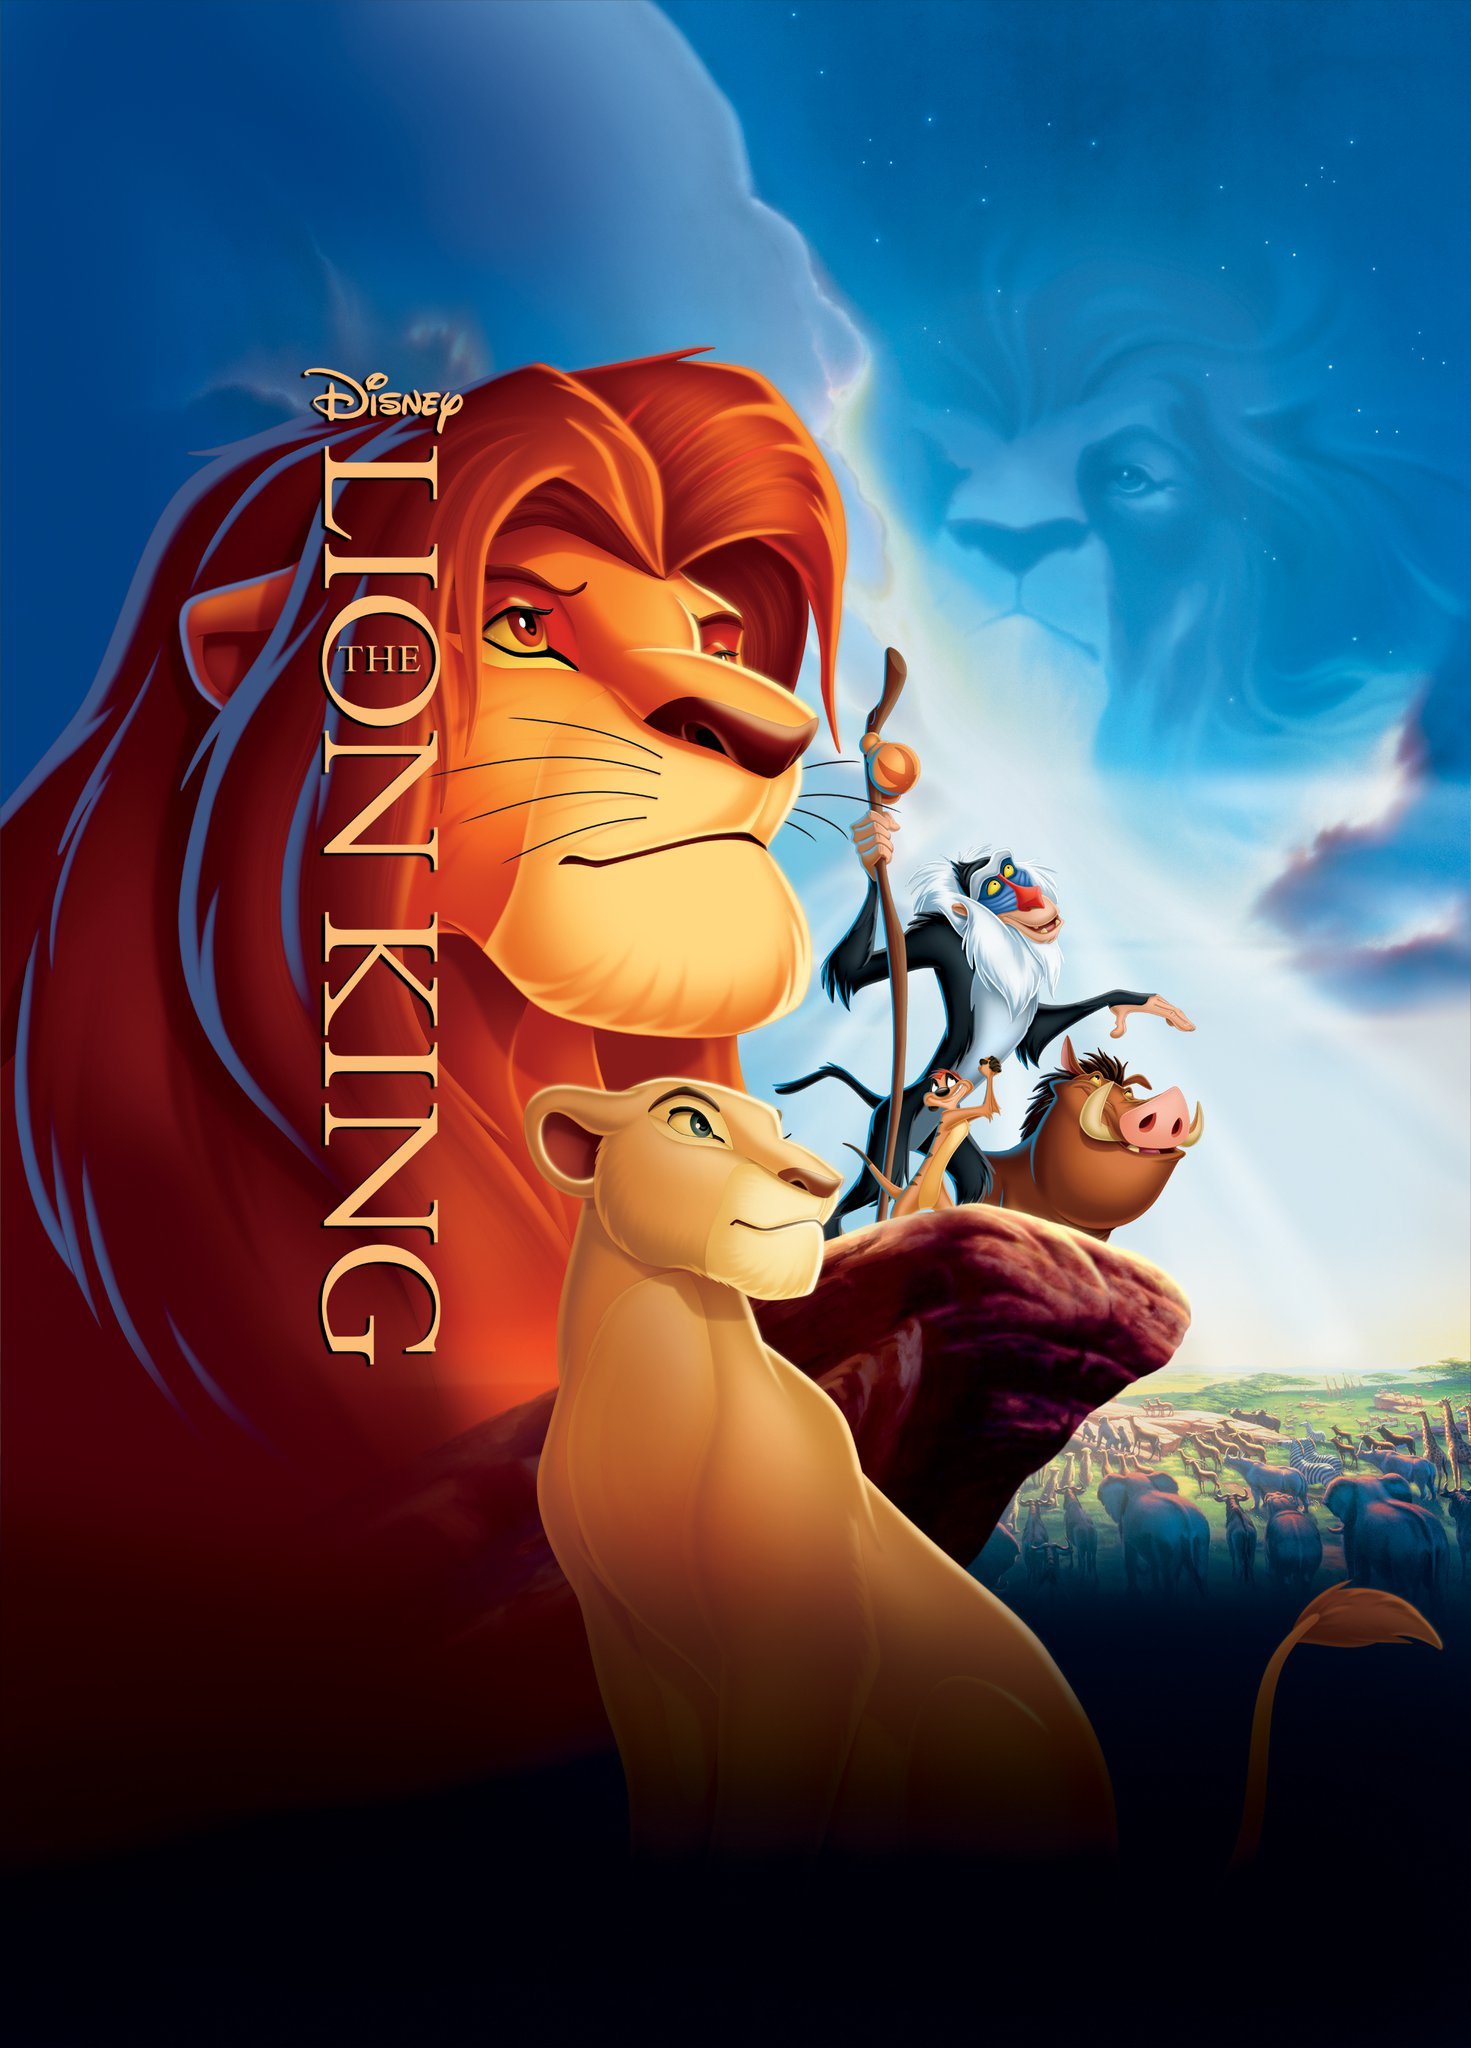 I Ve Never Seen The Lion King Rotoscopers